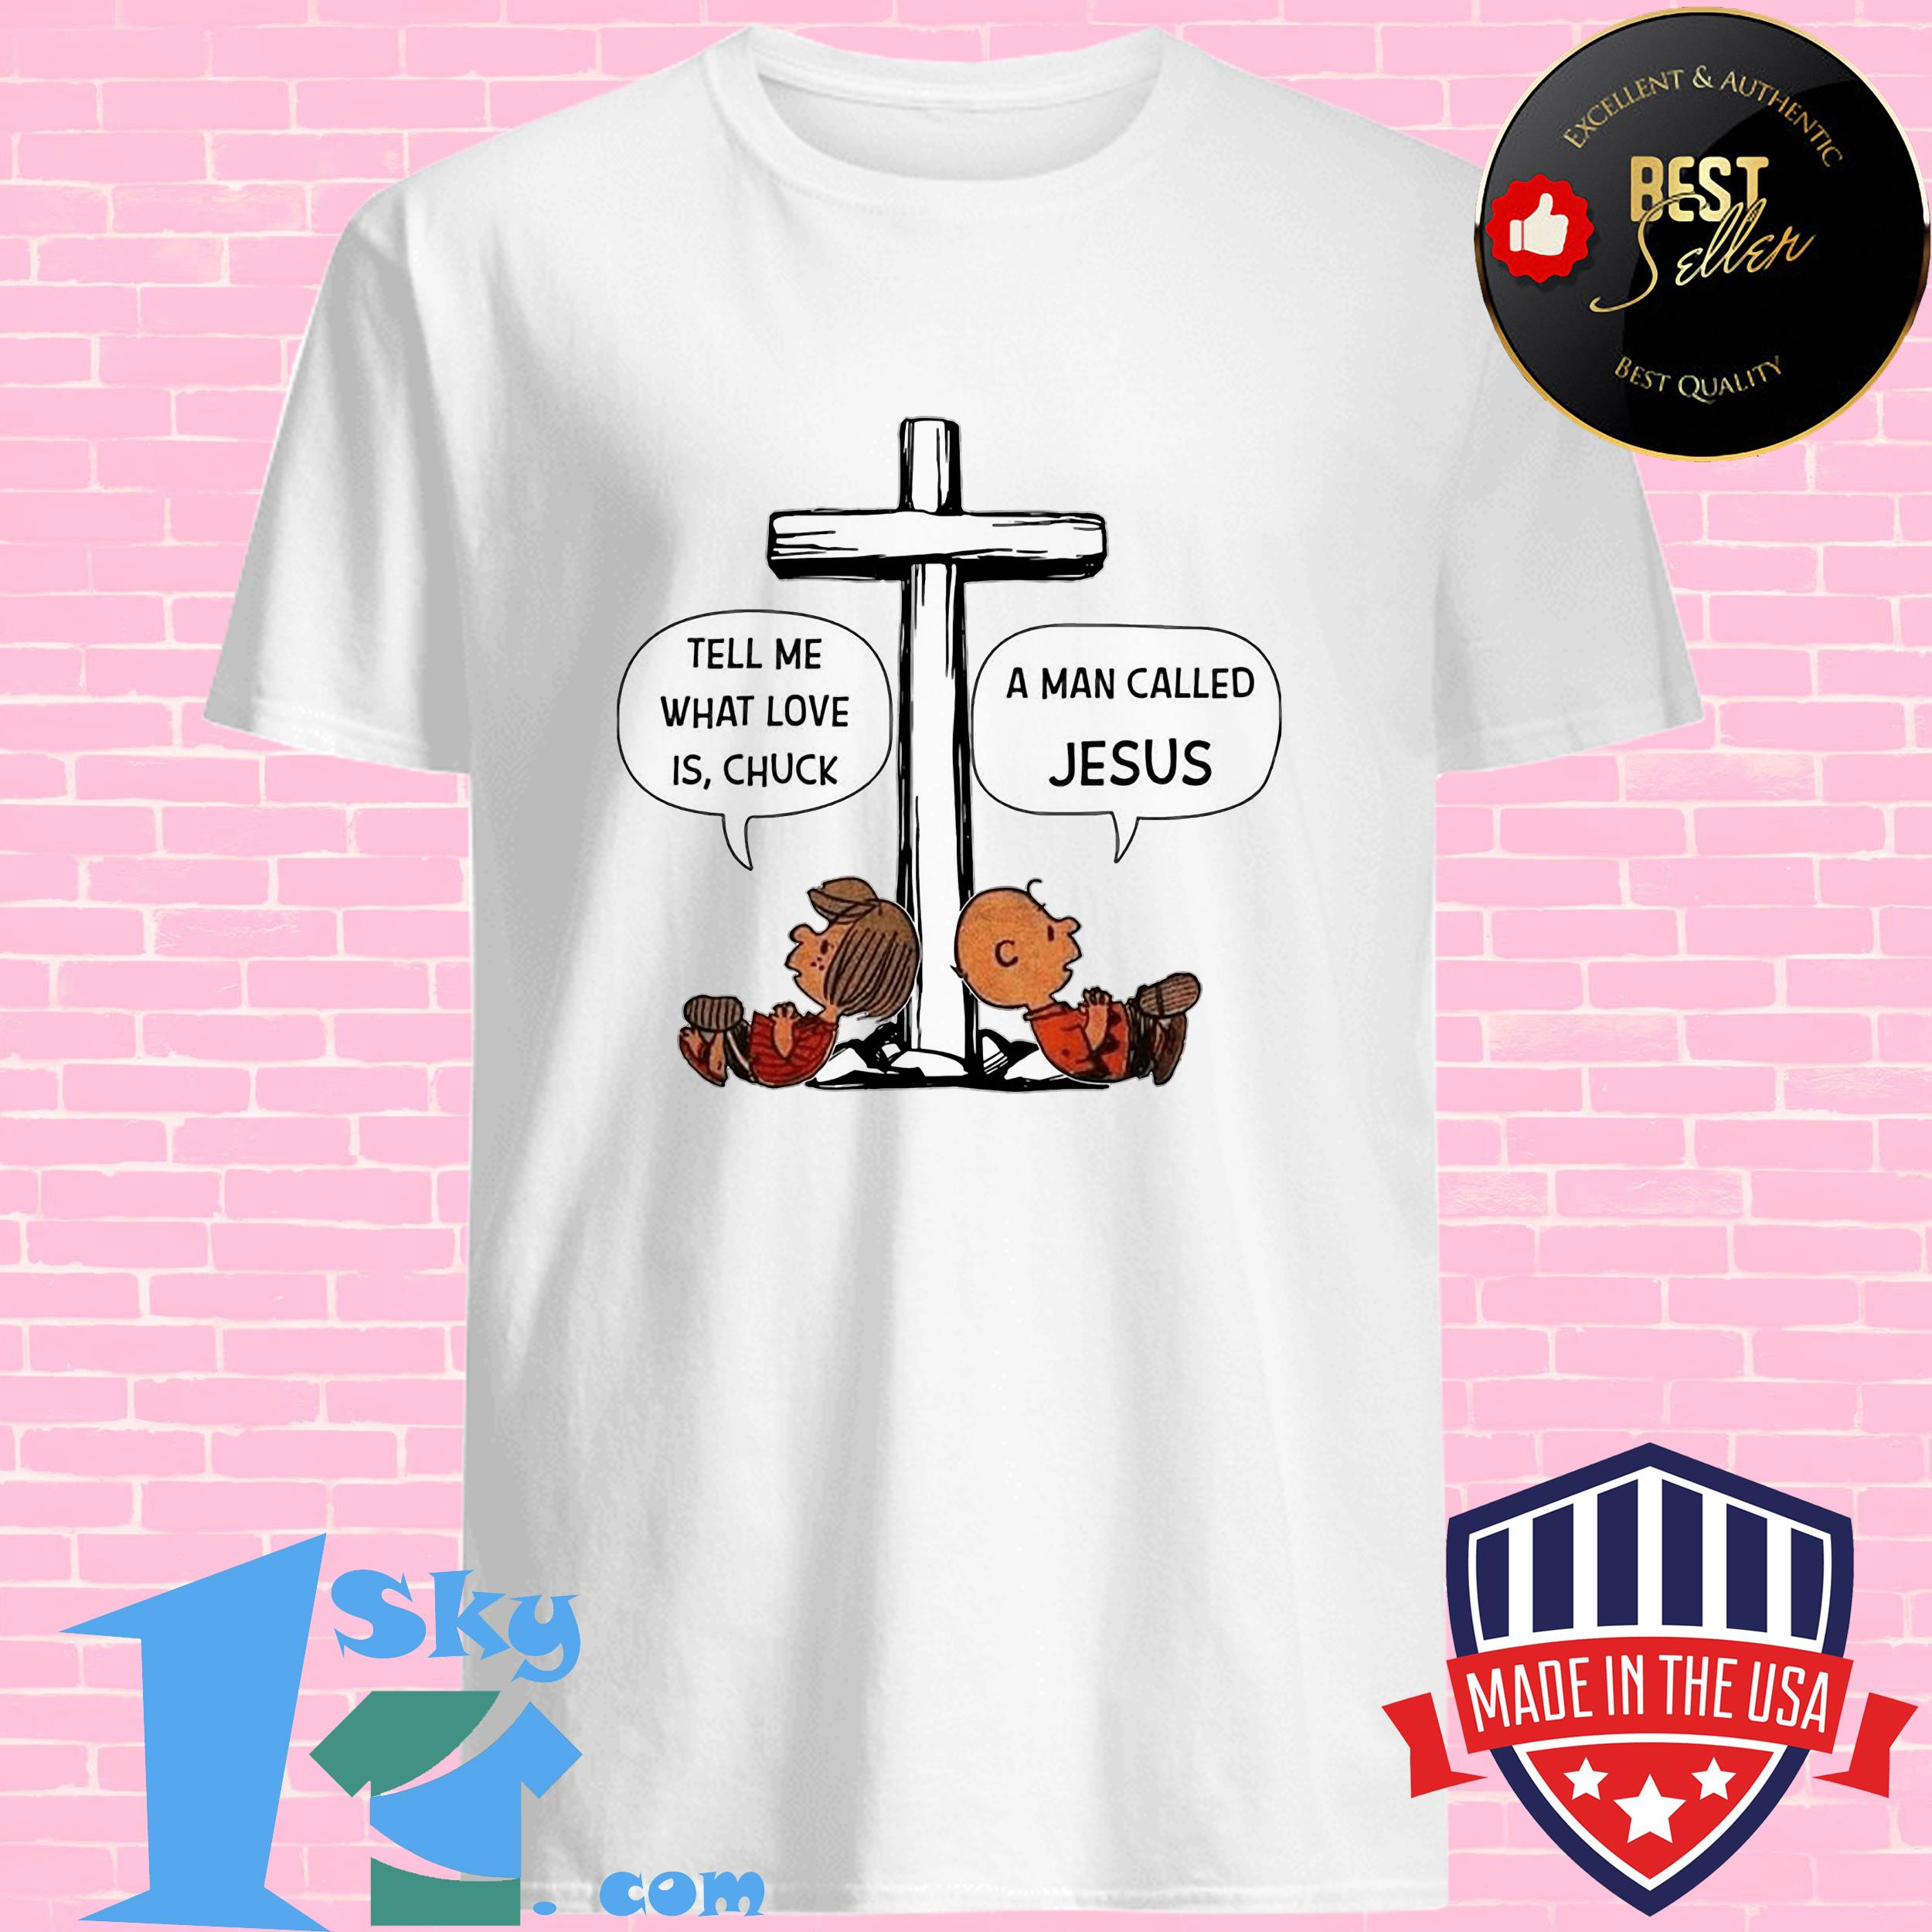 charlie brown tell me what love is chuck a man called jesus shirt - Charlie Brown Tell me what love is chuck a man called Jesus shirt